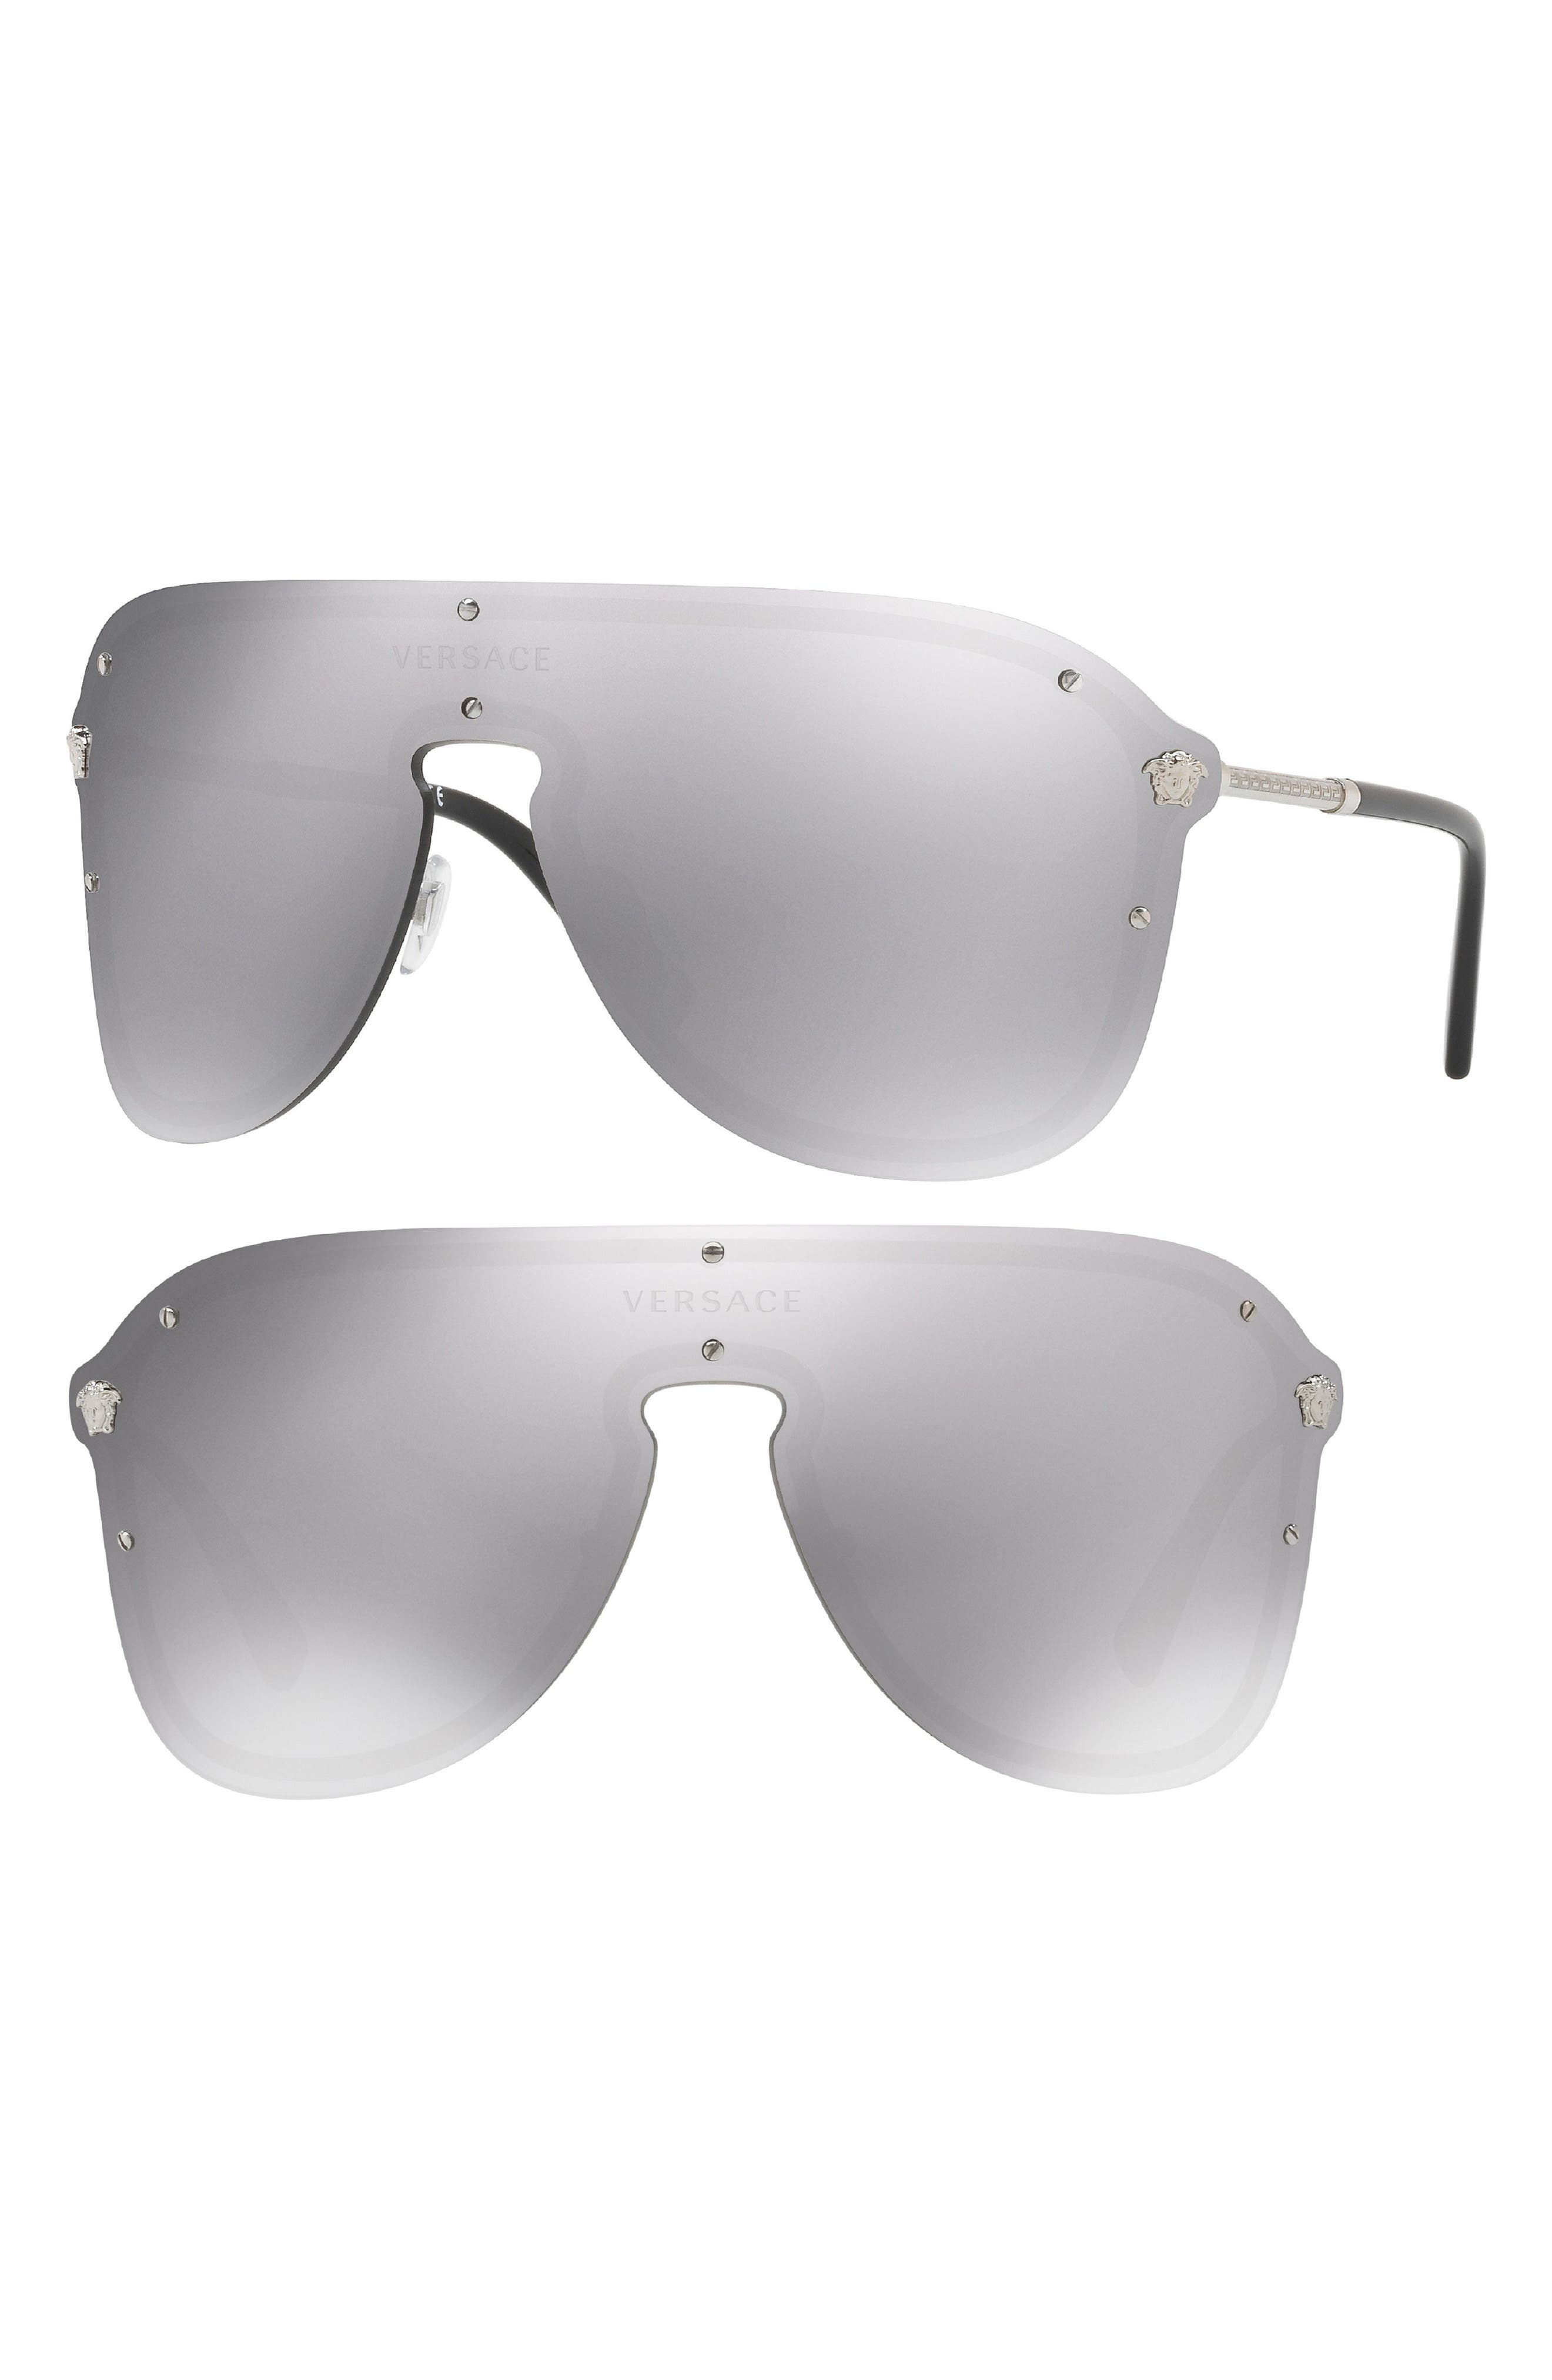 80s Fashion— What Women Wore in the 1980s Womens Versace 150mm Shield Sunglasses - Mirror Silver $295.00 AT vintagedancer.com